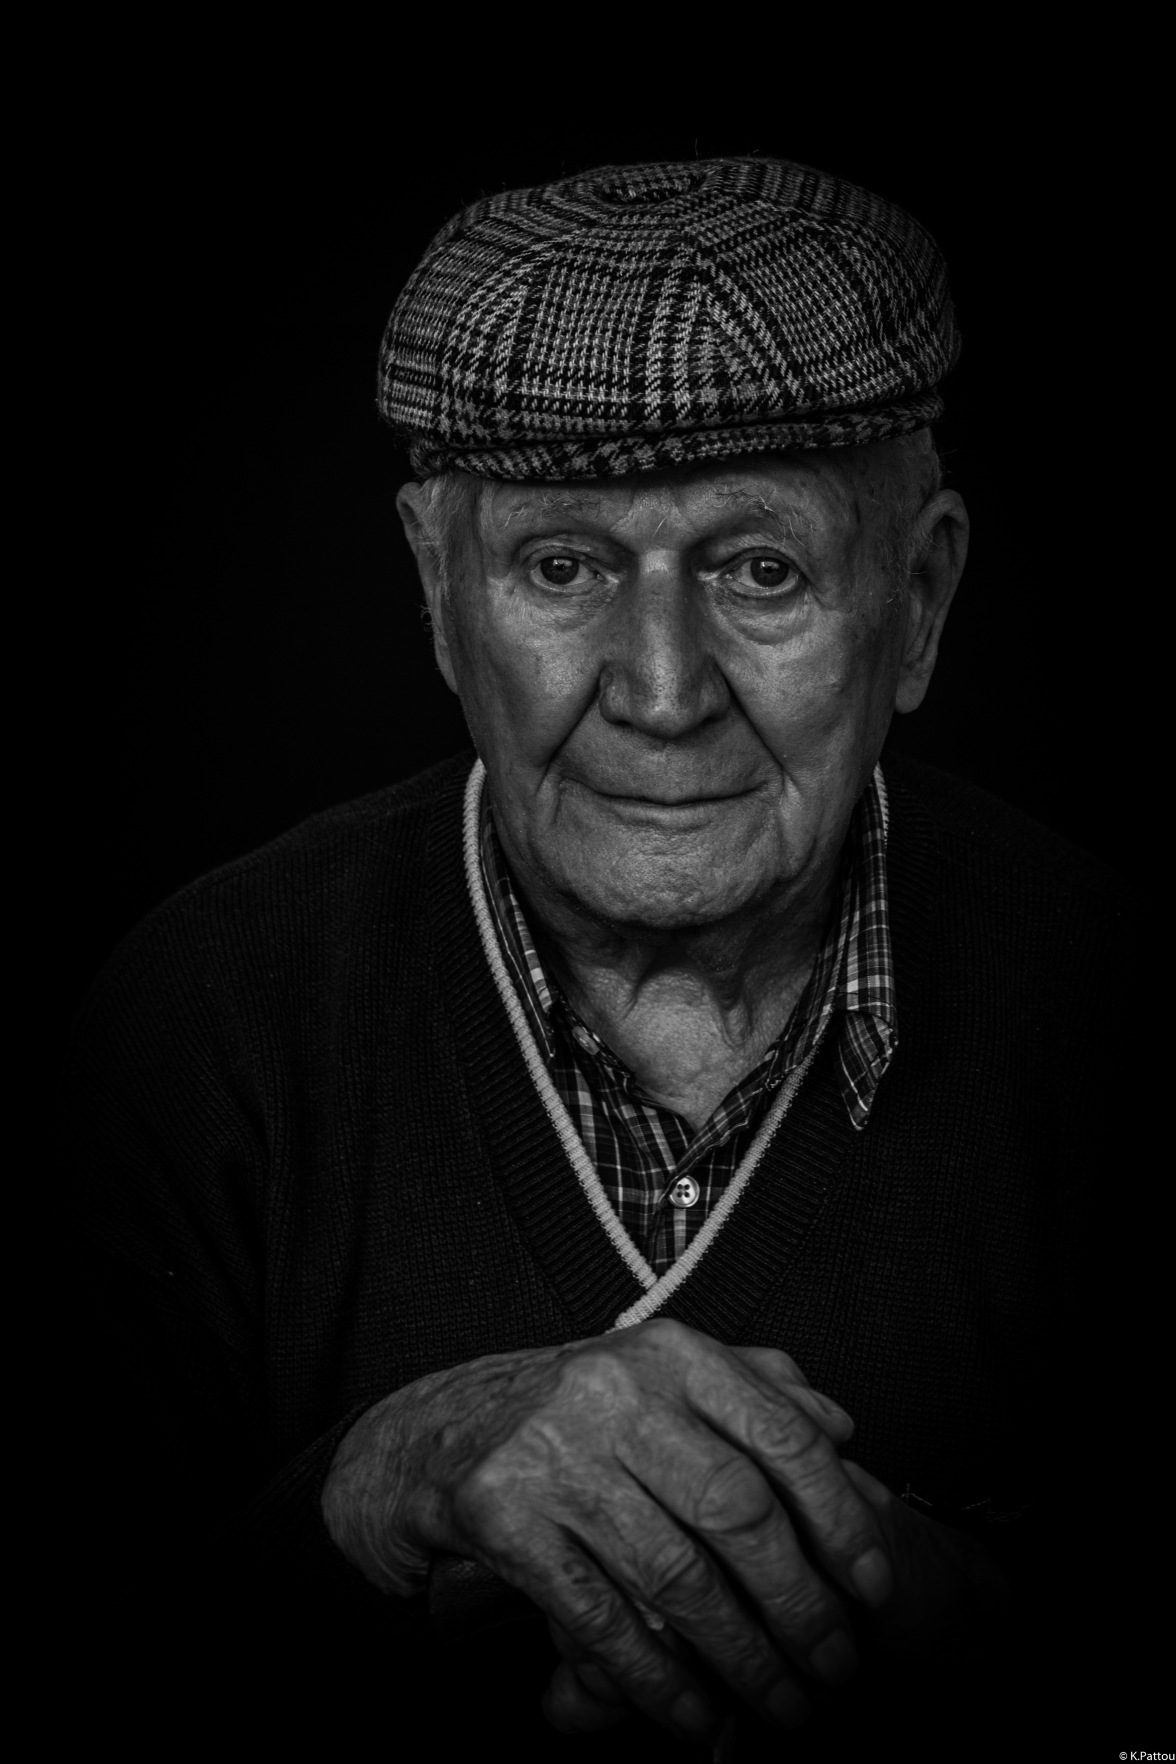 Black and white portrait of my grandfather, 95 years old man.